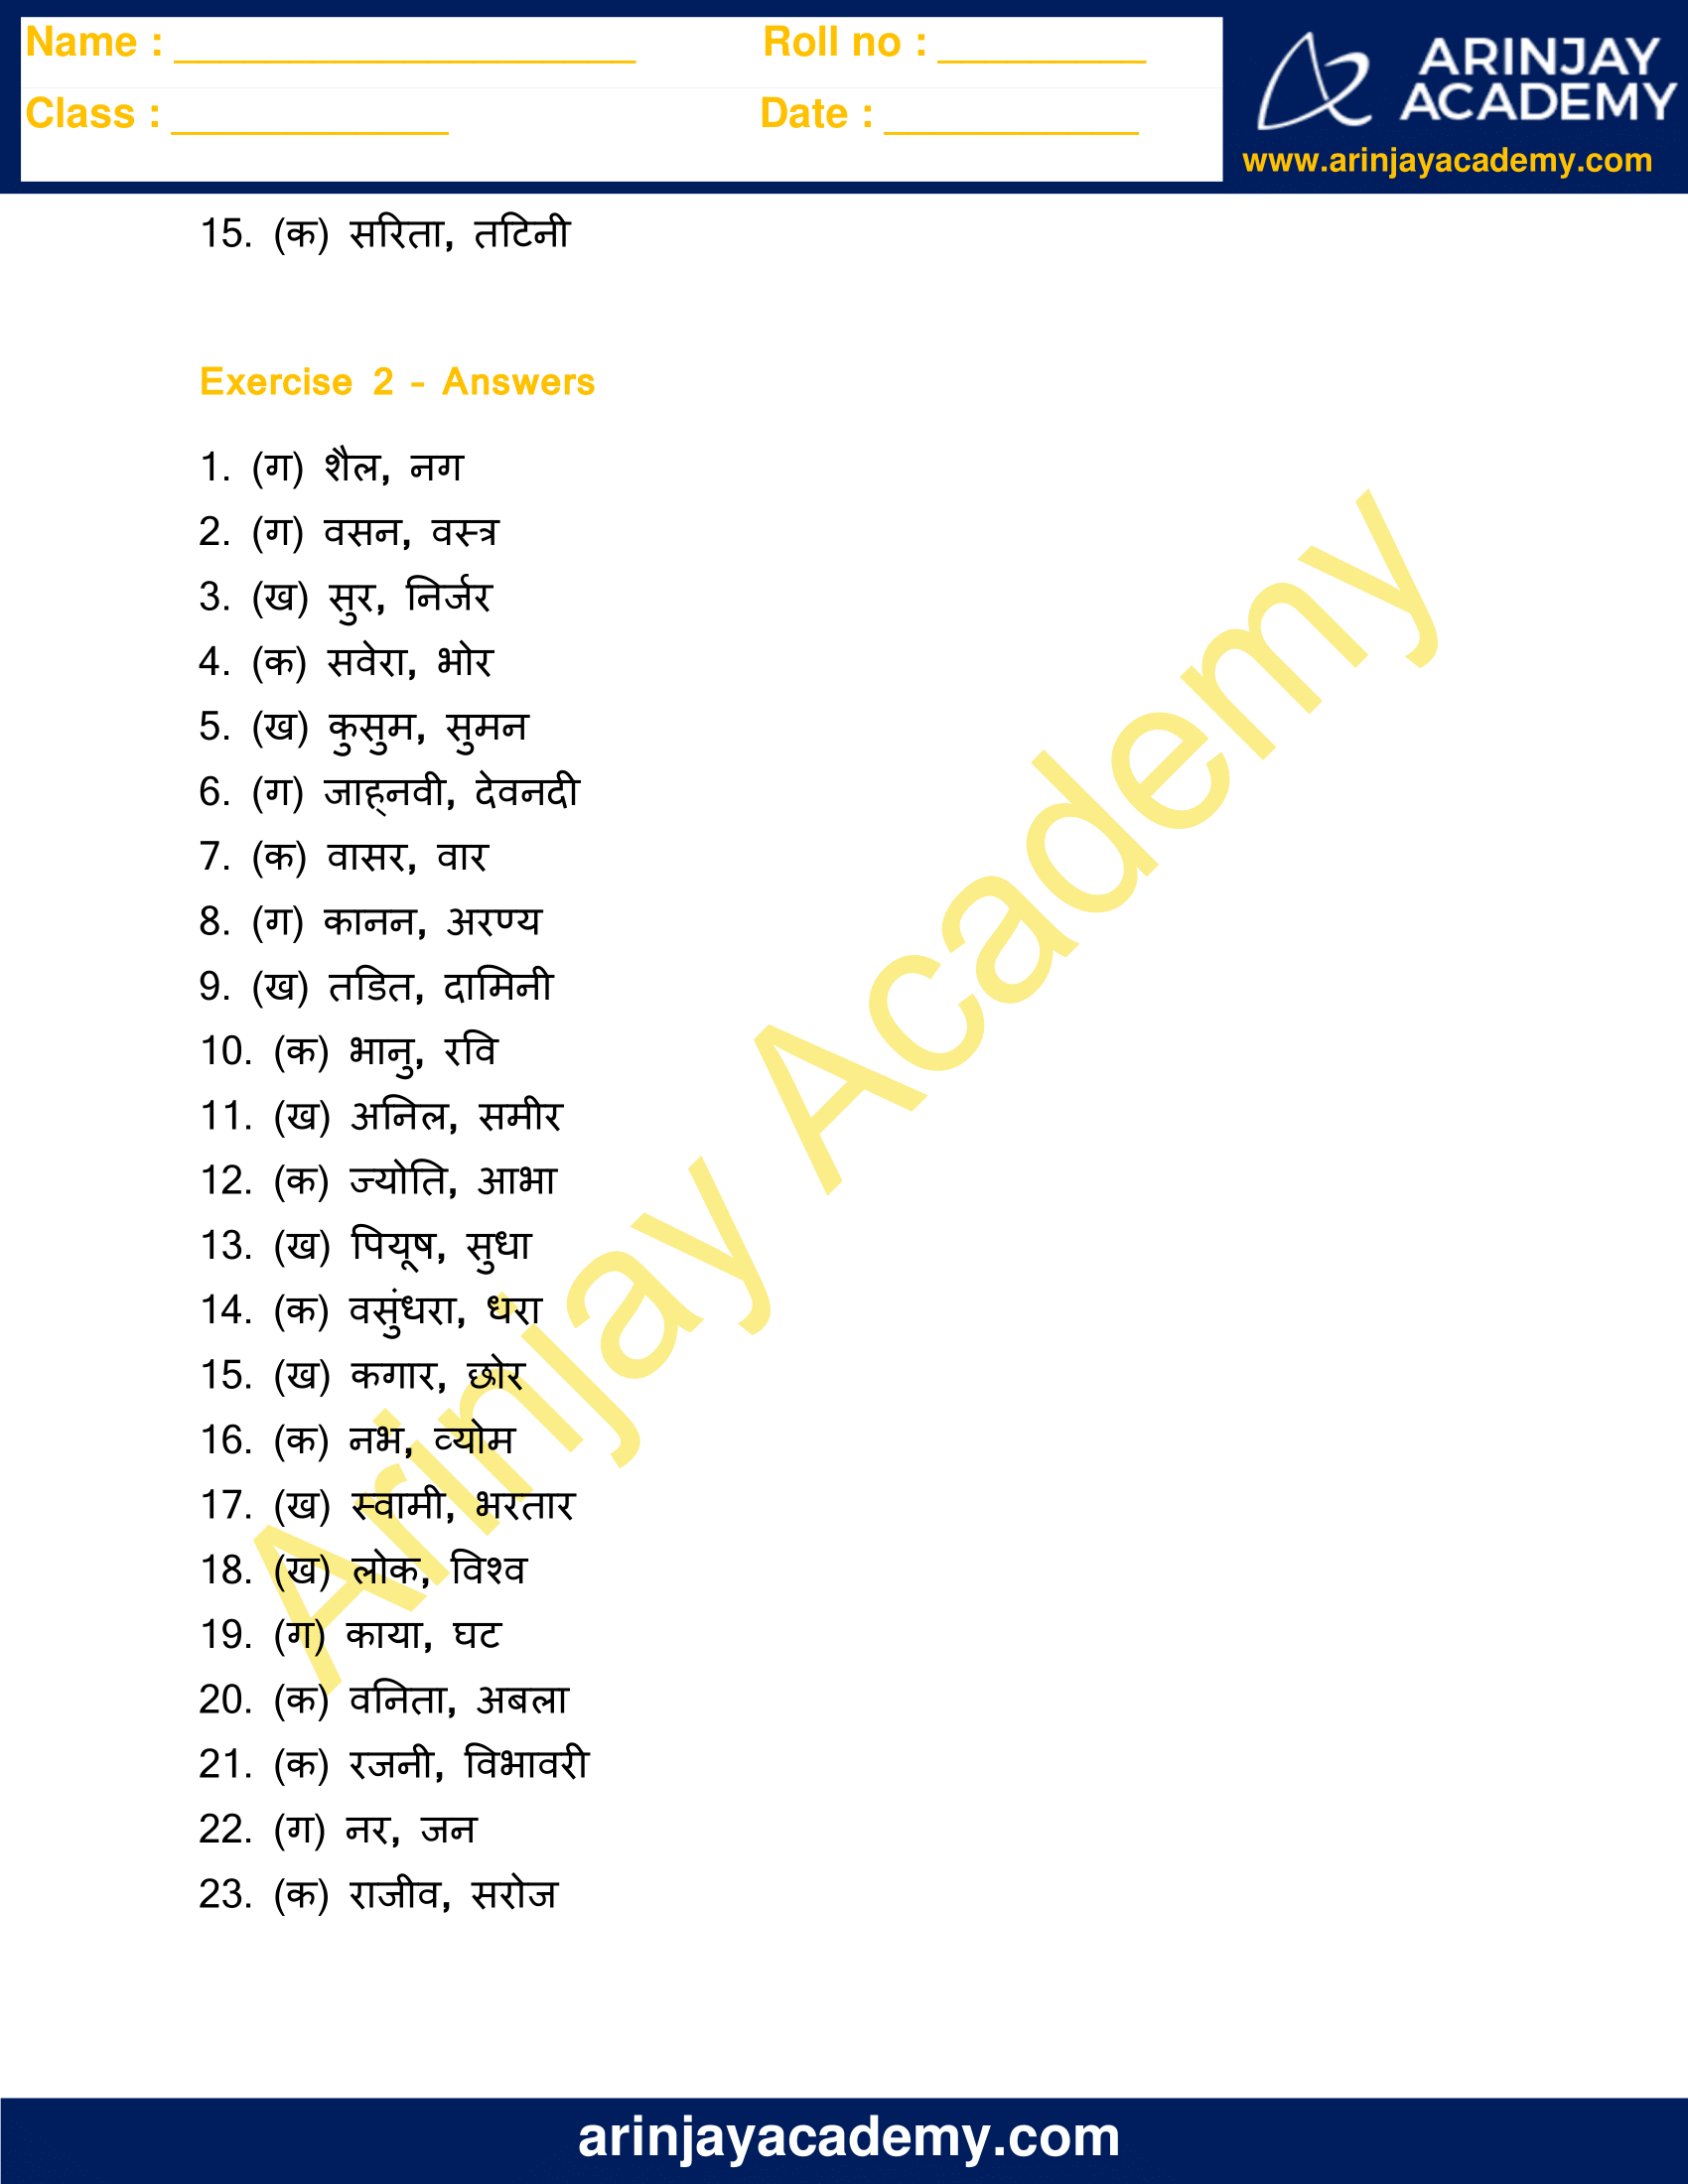 Samanarthi shabd in Hindi Worksheet for Class 5 image 6